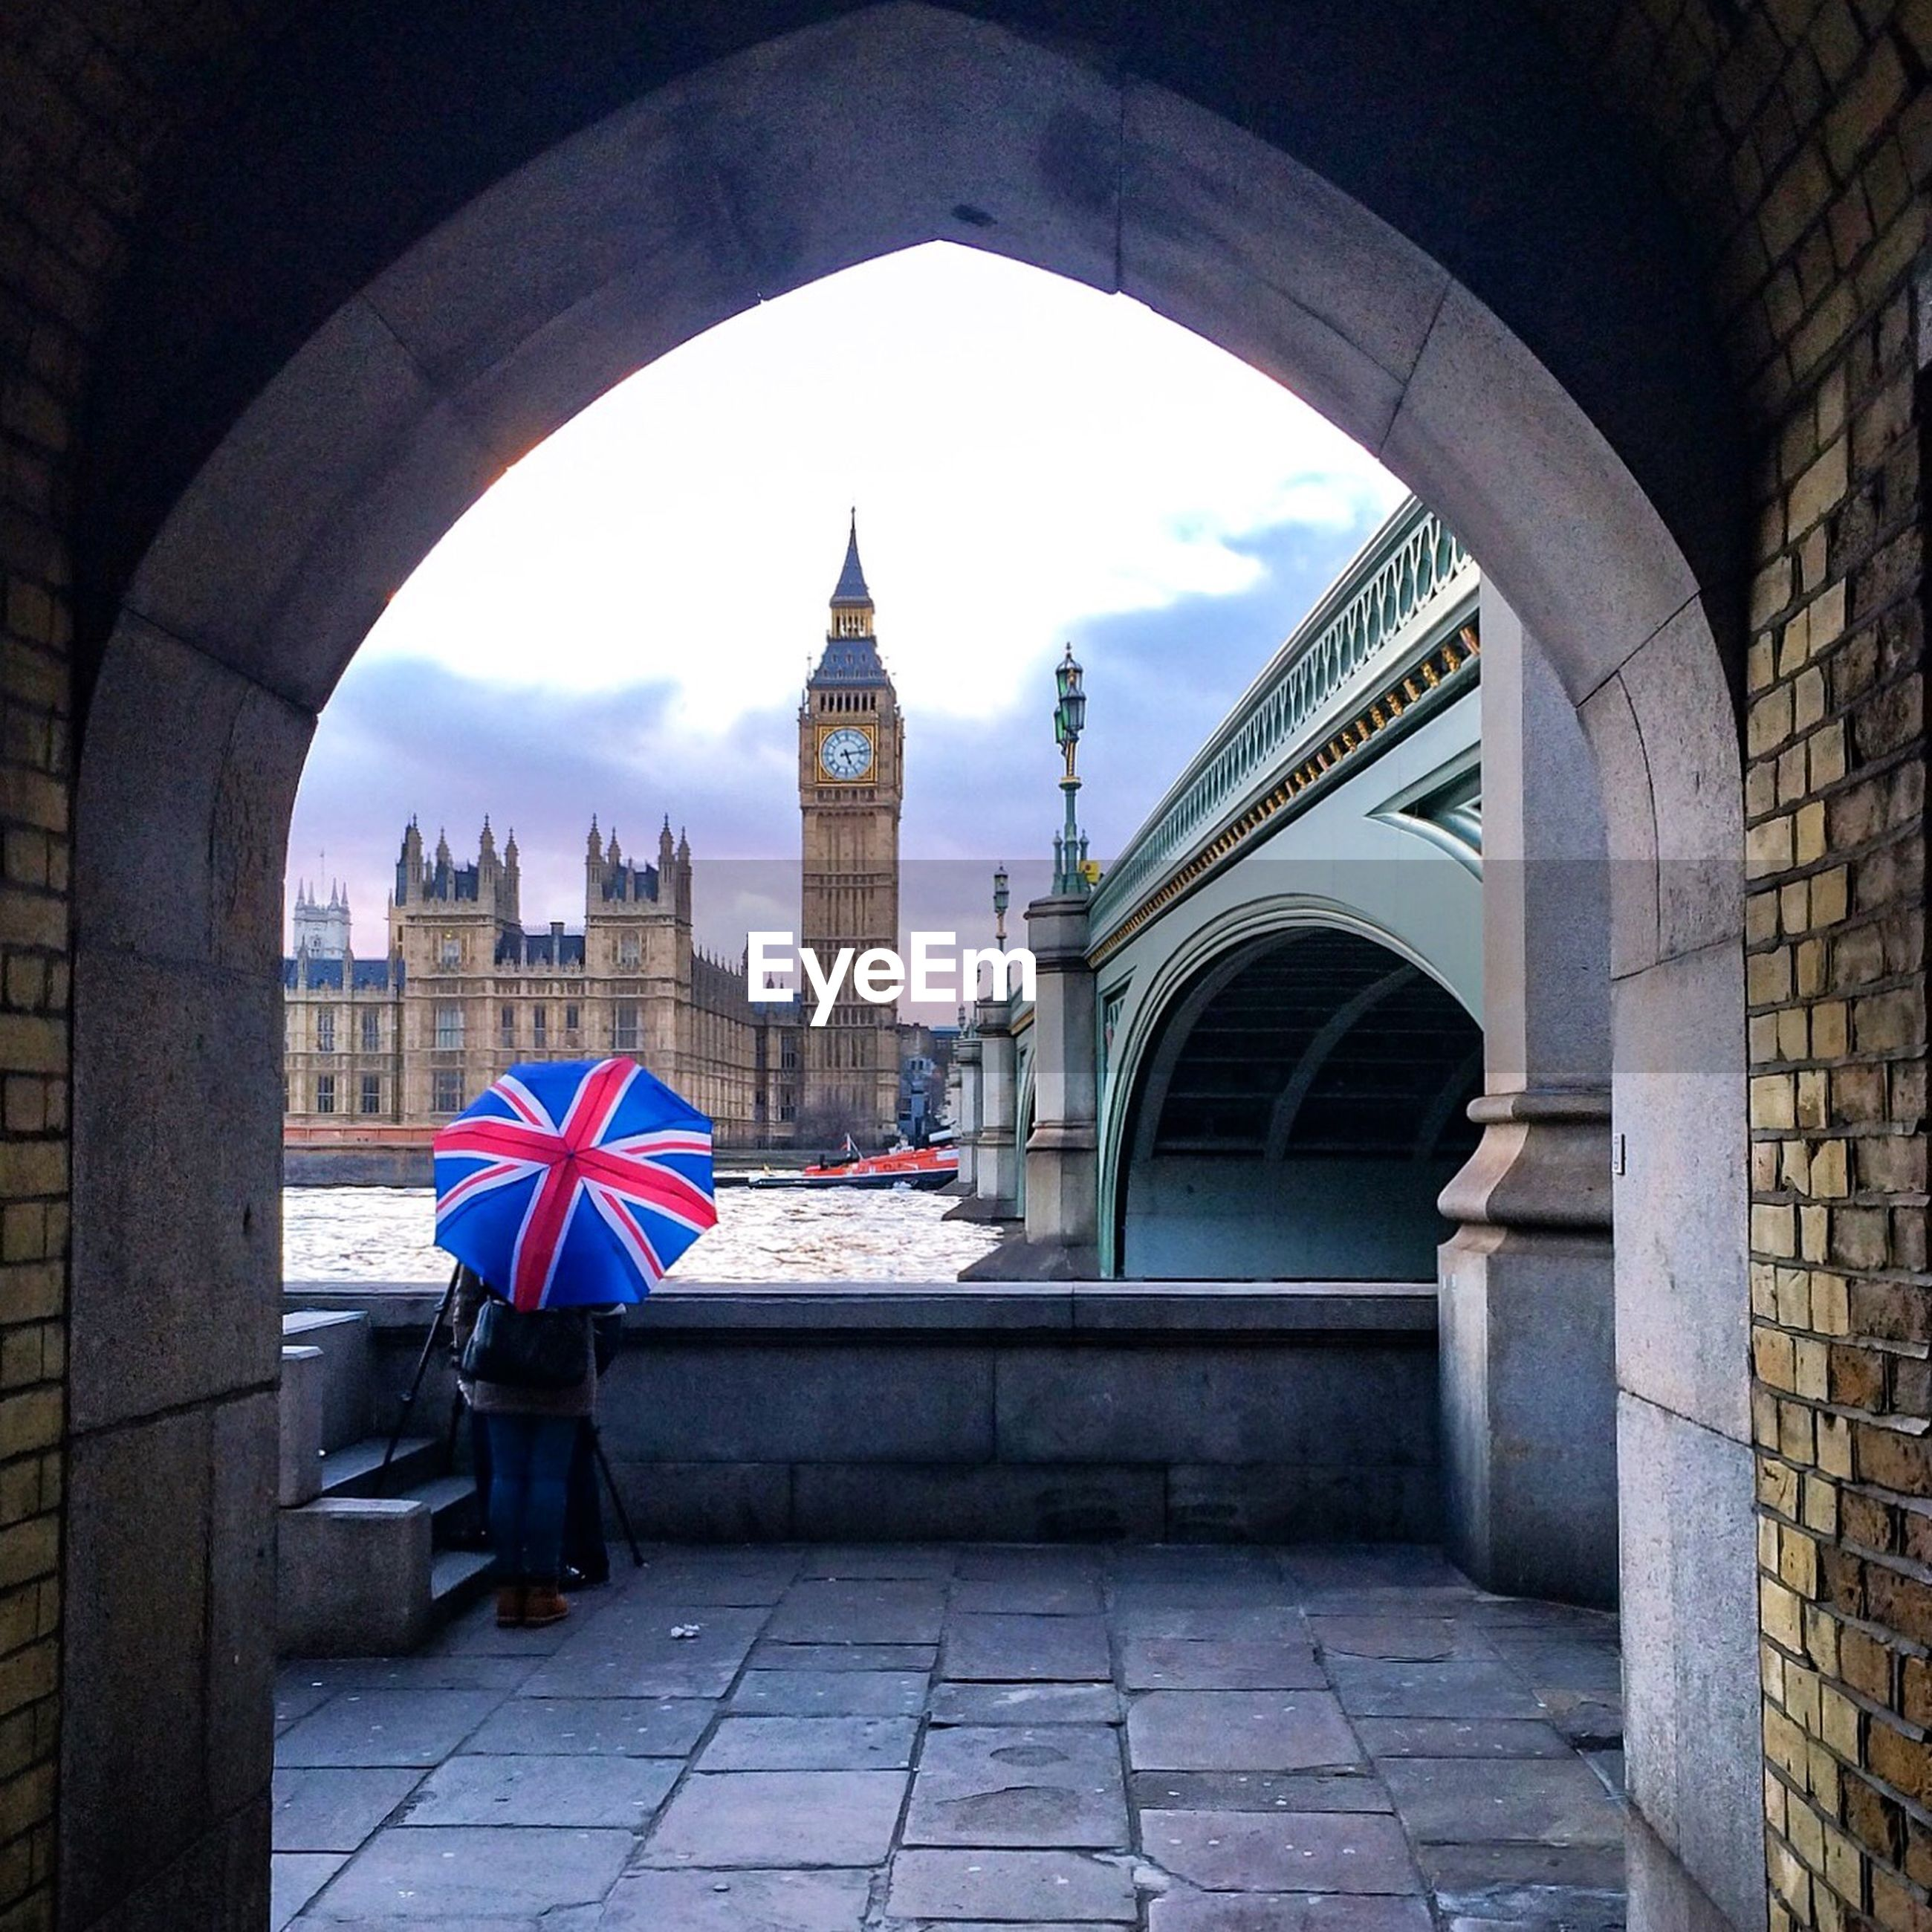 Big ben by river thames seen through archway